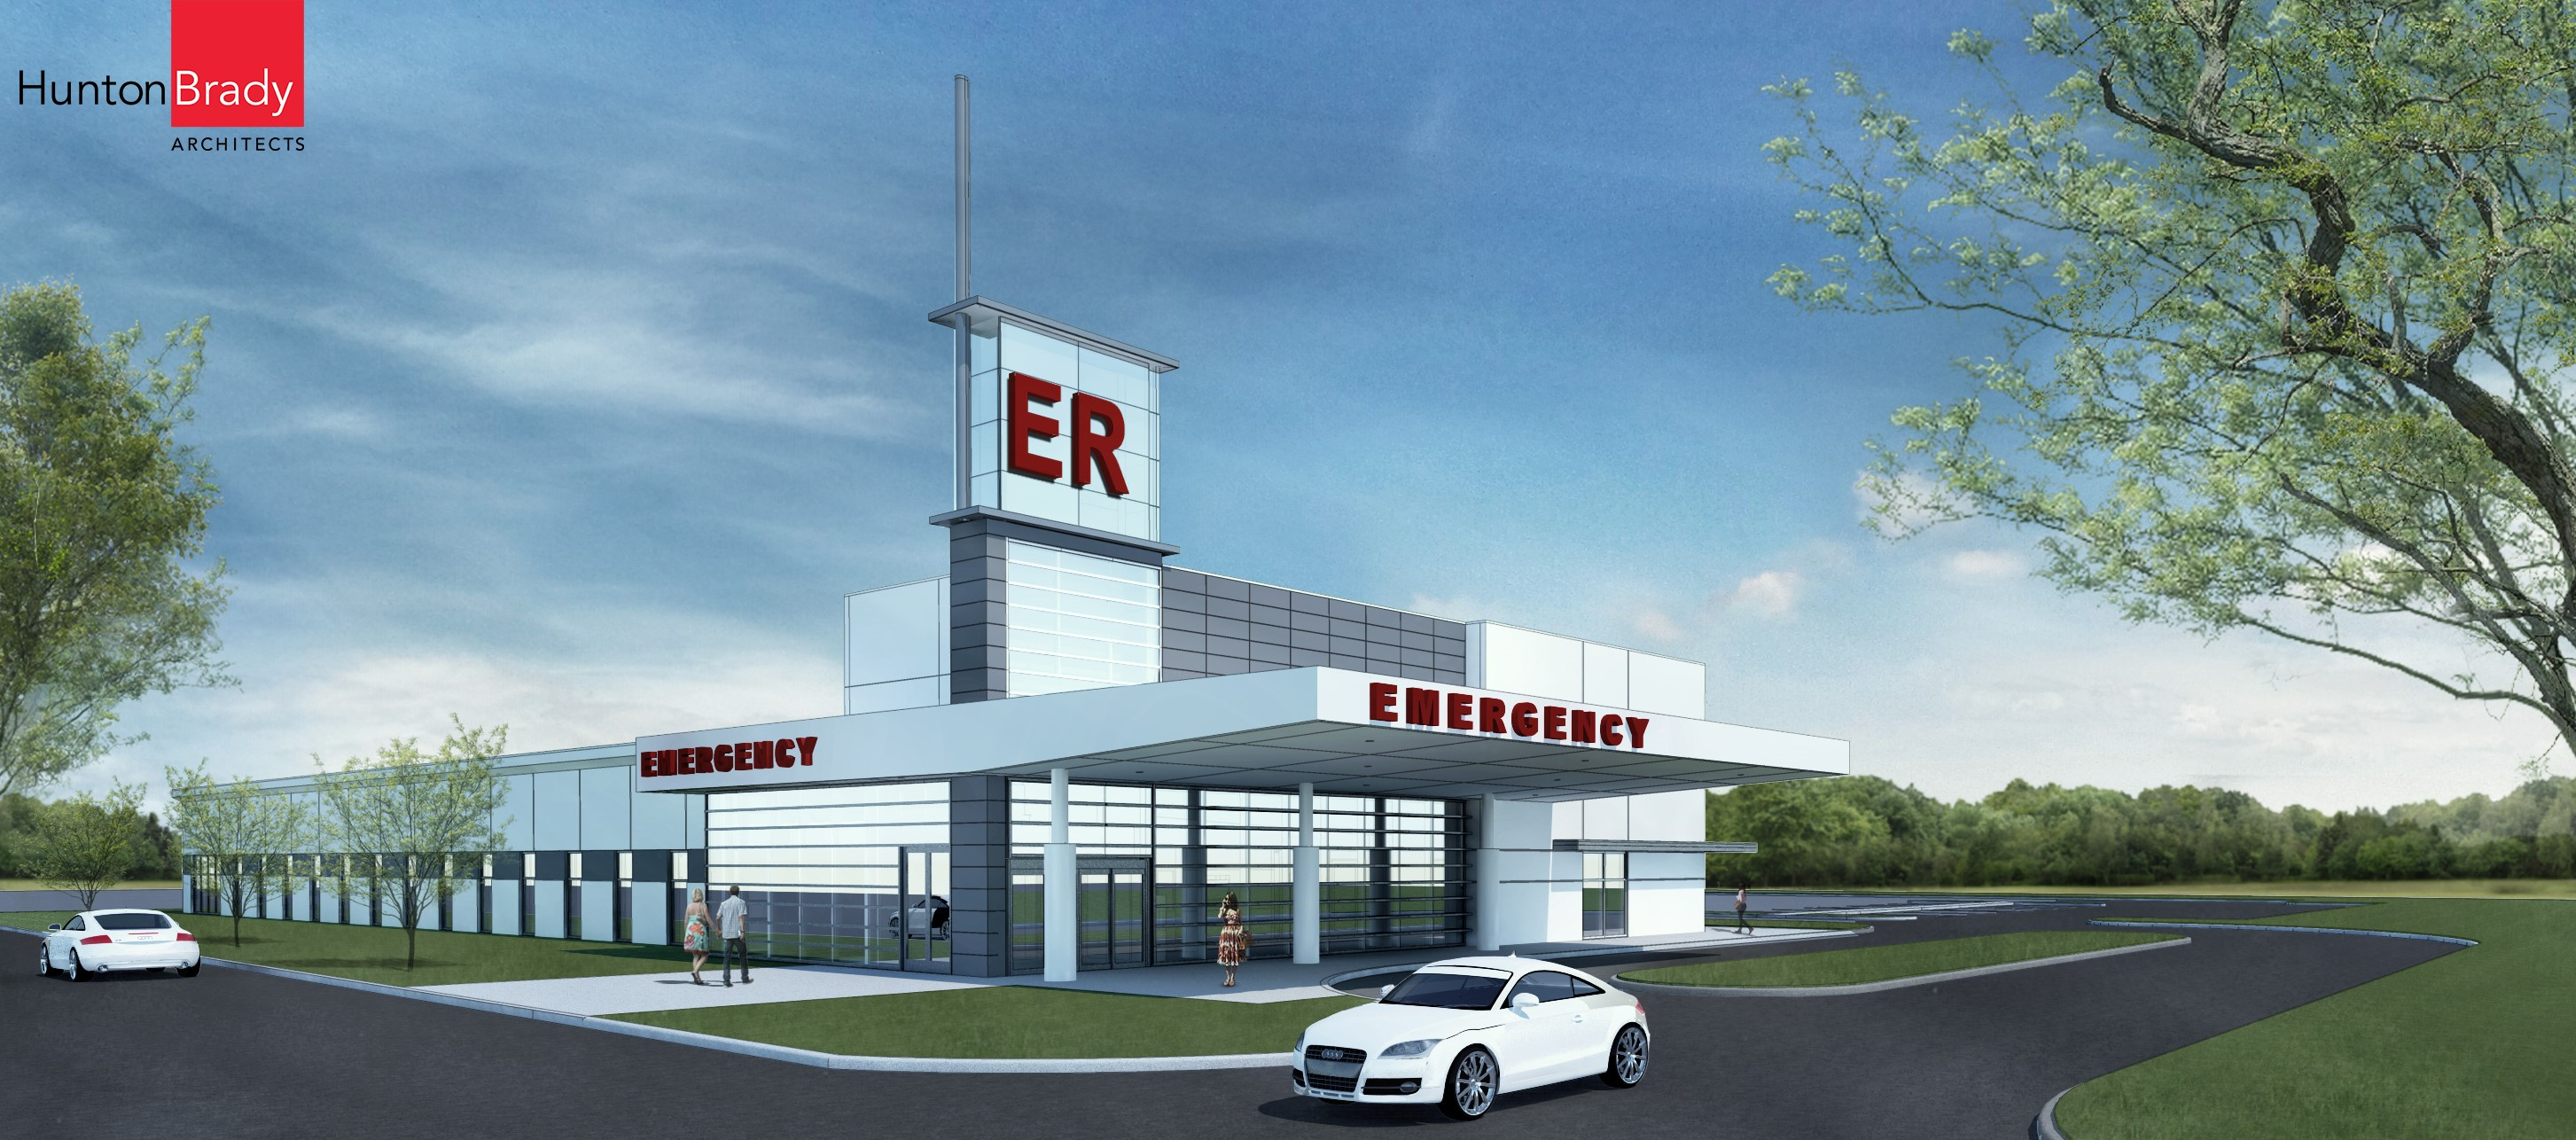 AdventHealth Begins Construction on Two New Emergency Rooms